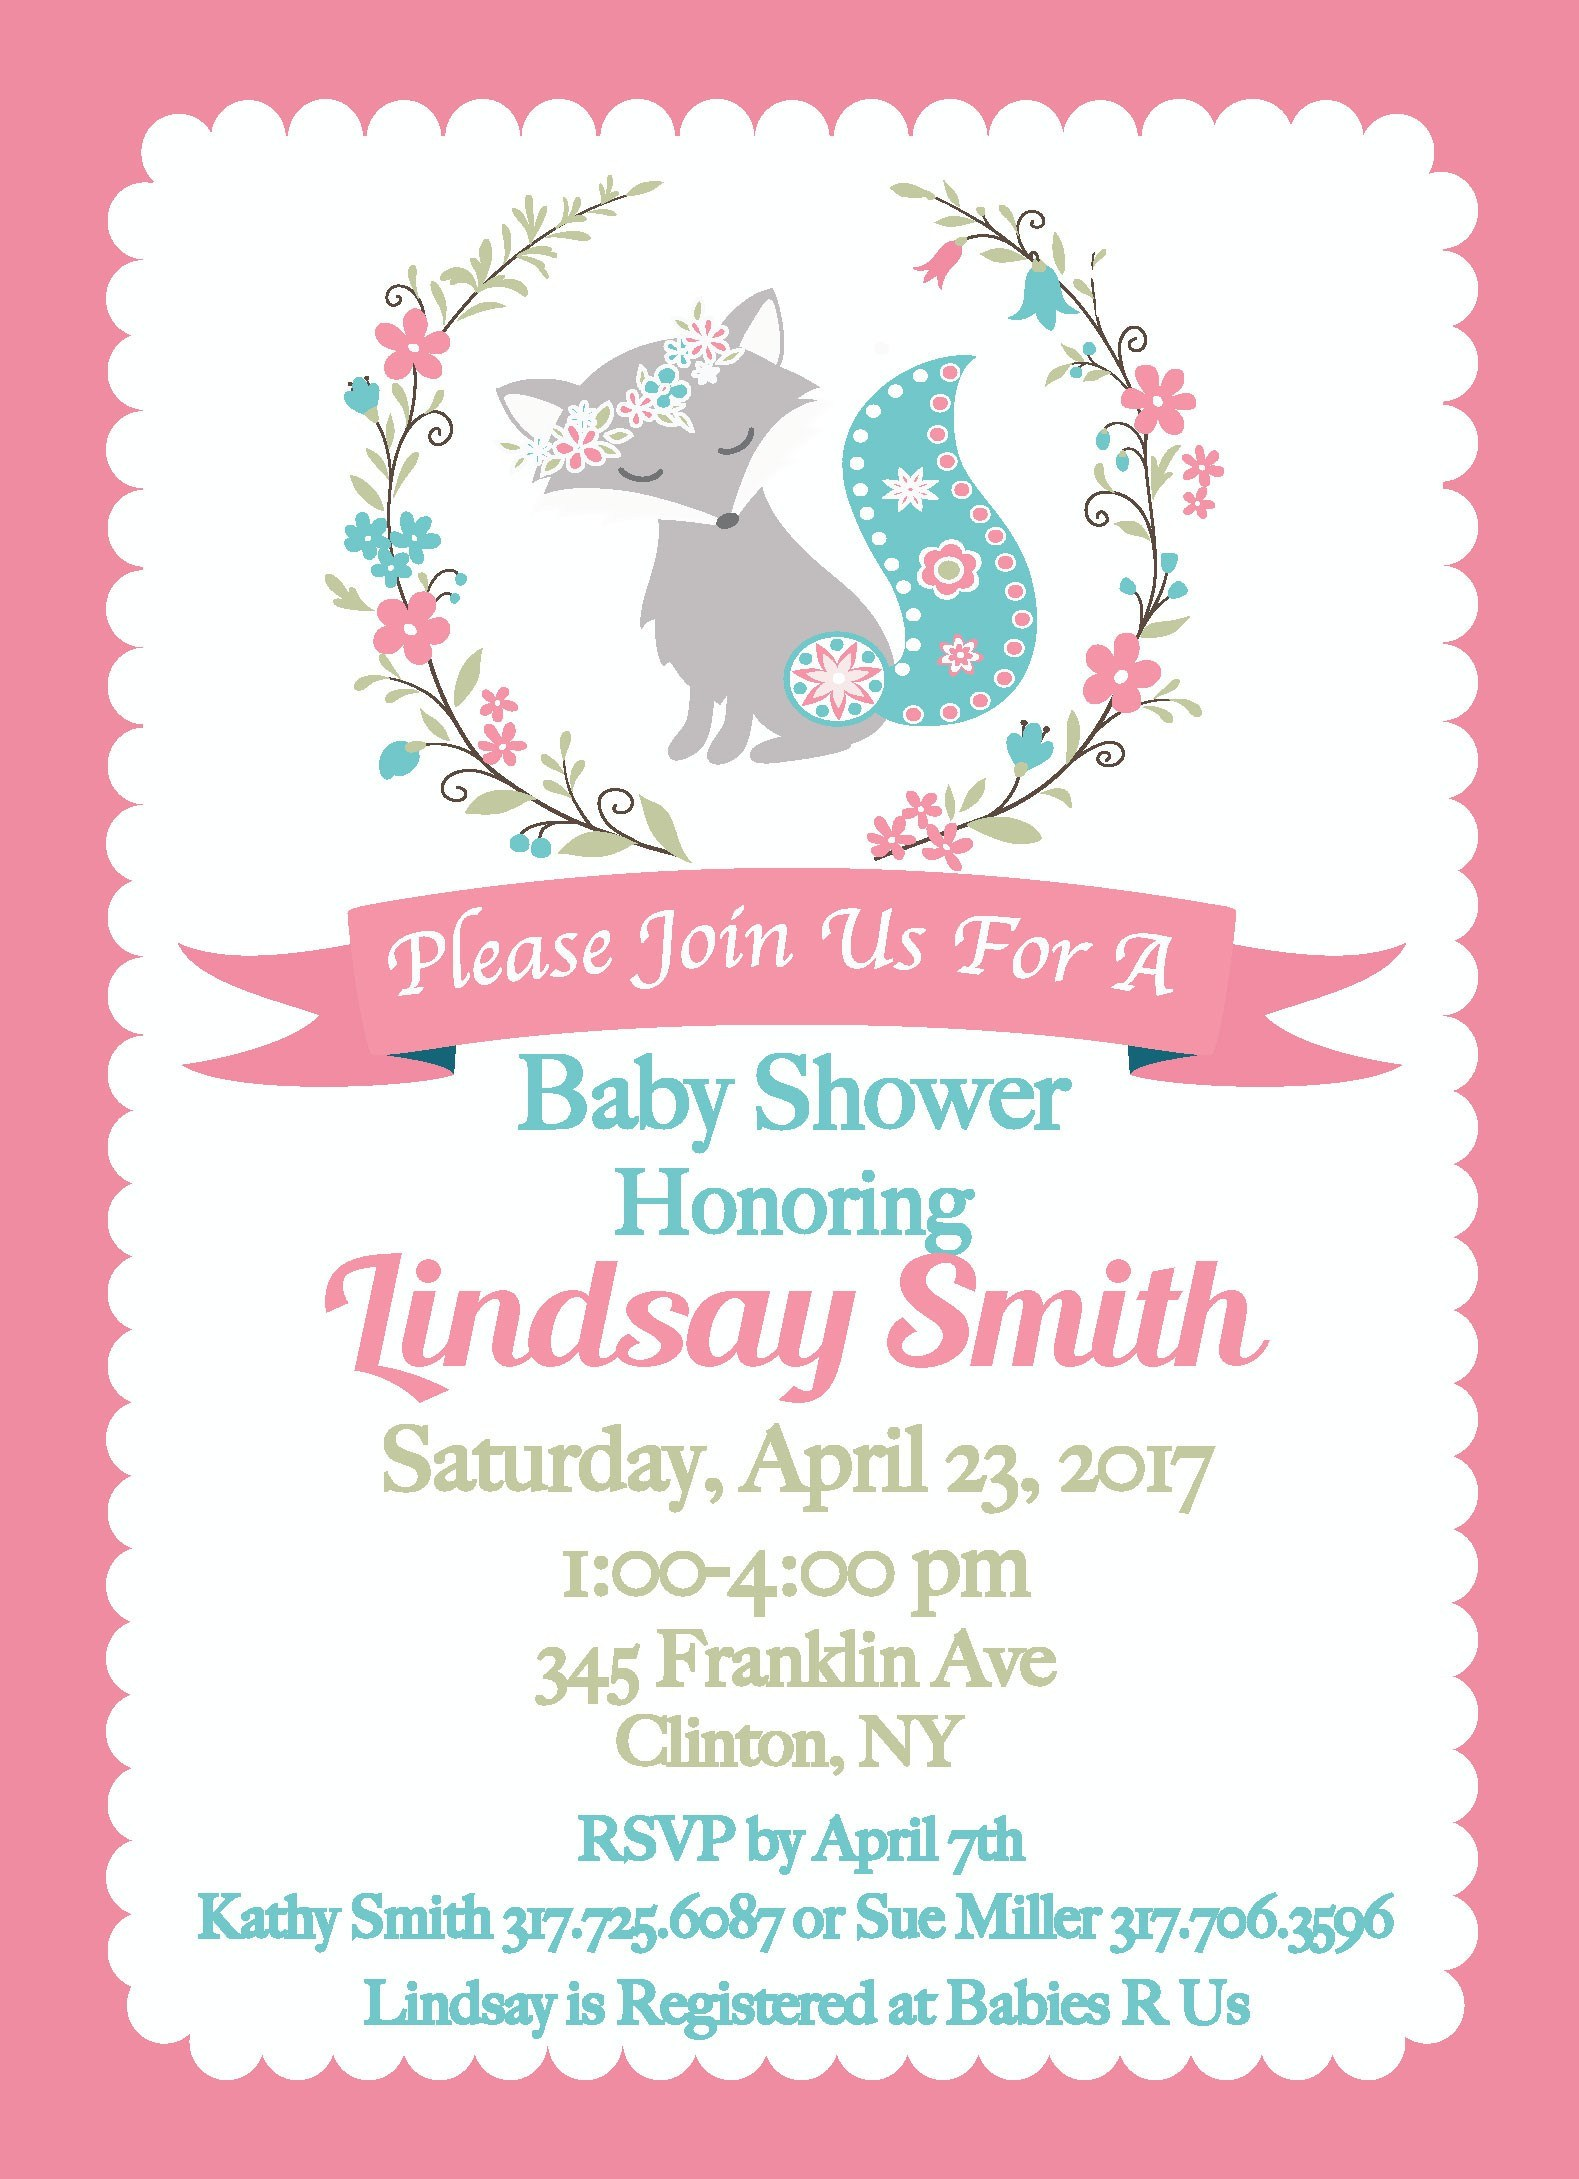 Full Size of Baby Shower:baby Shower Halls With Baby Shower At The Park Plus Recuerdos De Baby Shower Together With Fun Baby Shower Games As Well As Baby Shower Hostess Gifts And Baby Shower Verses Baby Shower Invitation Wording Baby Boy Shower Favors Baby Shower Baby Shower Baby Shower Adalah Baby Shower Quotes Baby Shower Wishing Well Best Baby Shower Gifts 2018 Corner Baby Shower Thank You Cards Wording Gallery Bridal